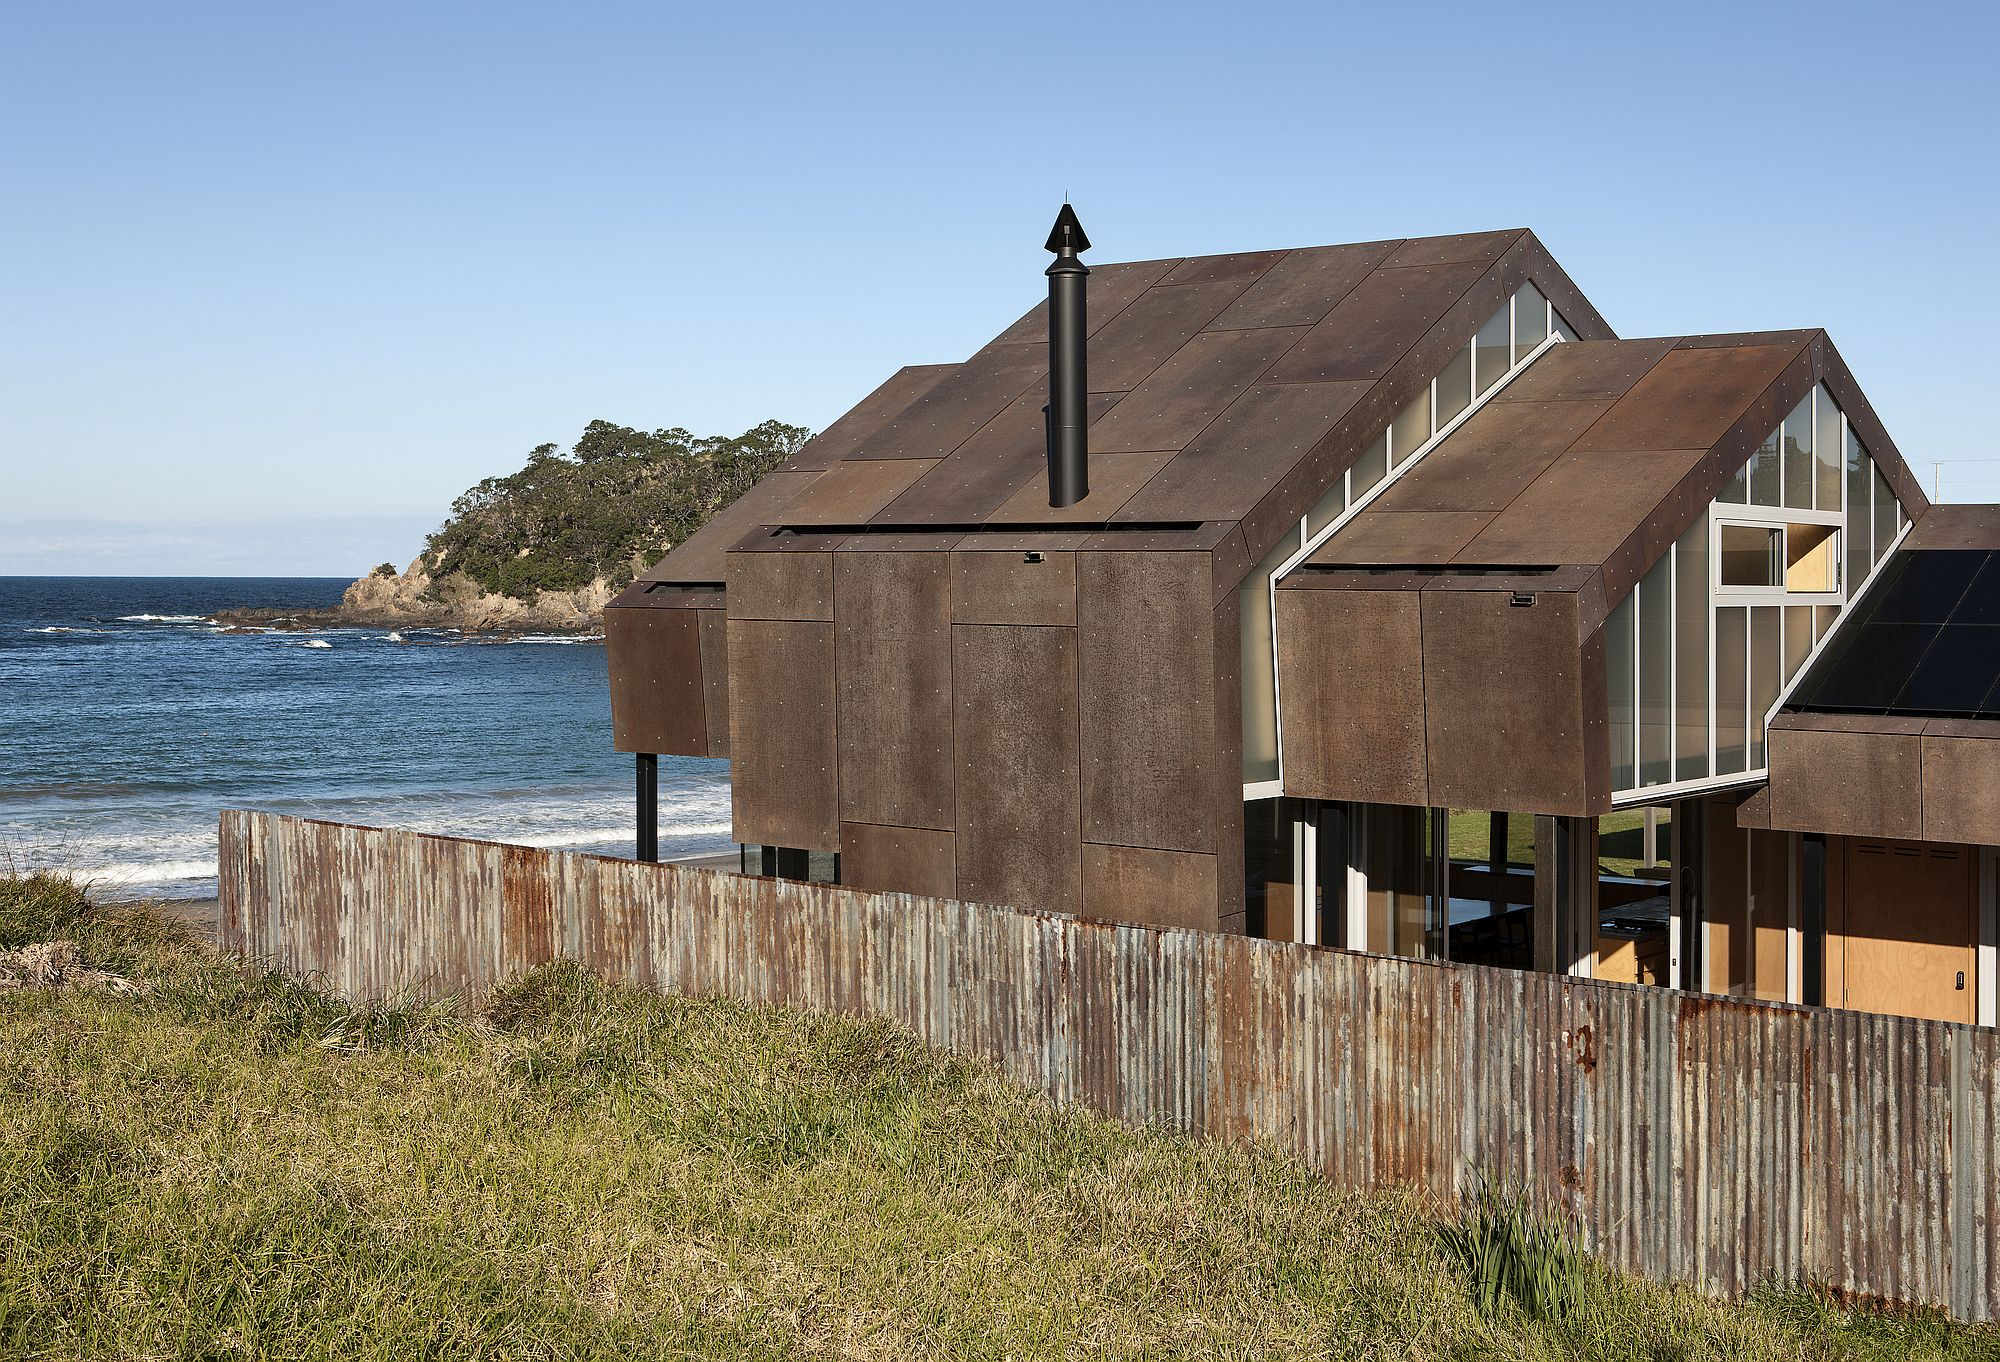 Weathered steel exterior of the oceanside home